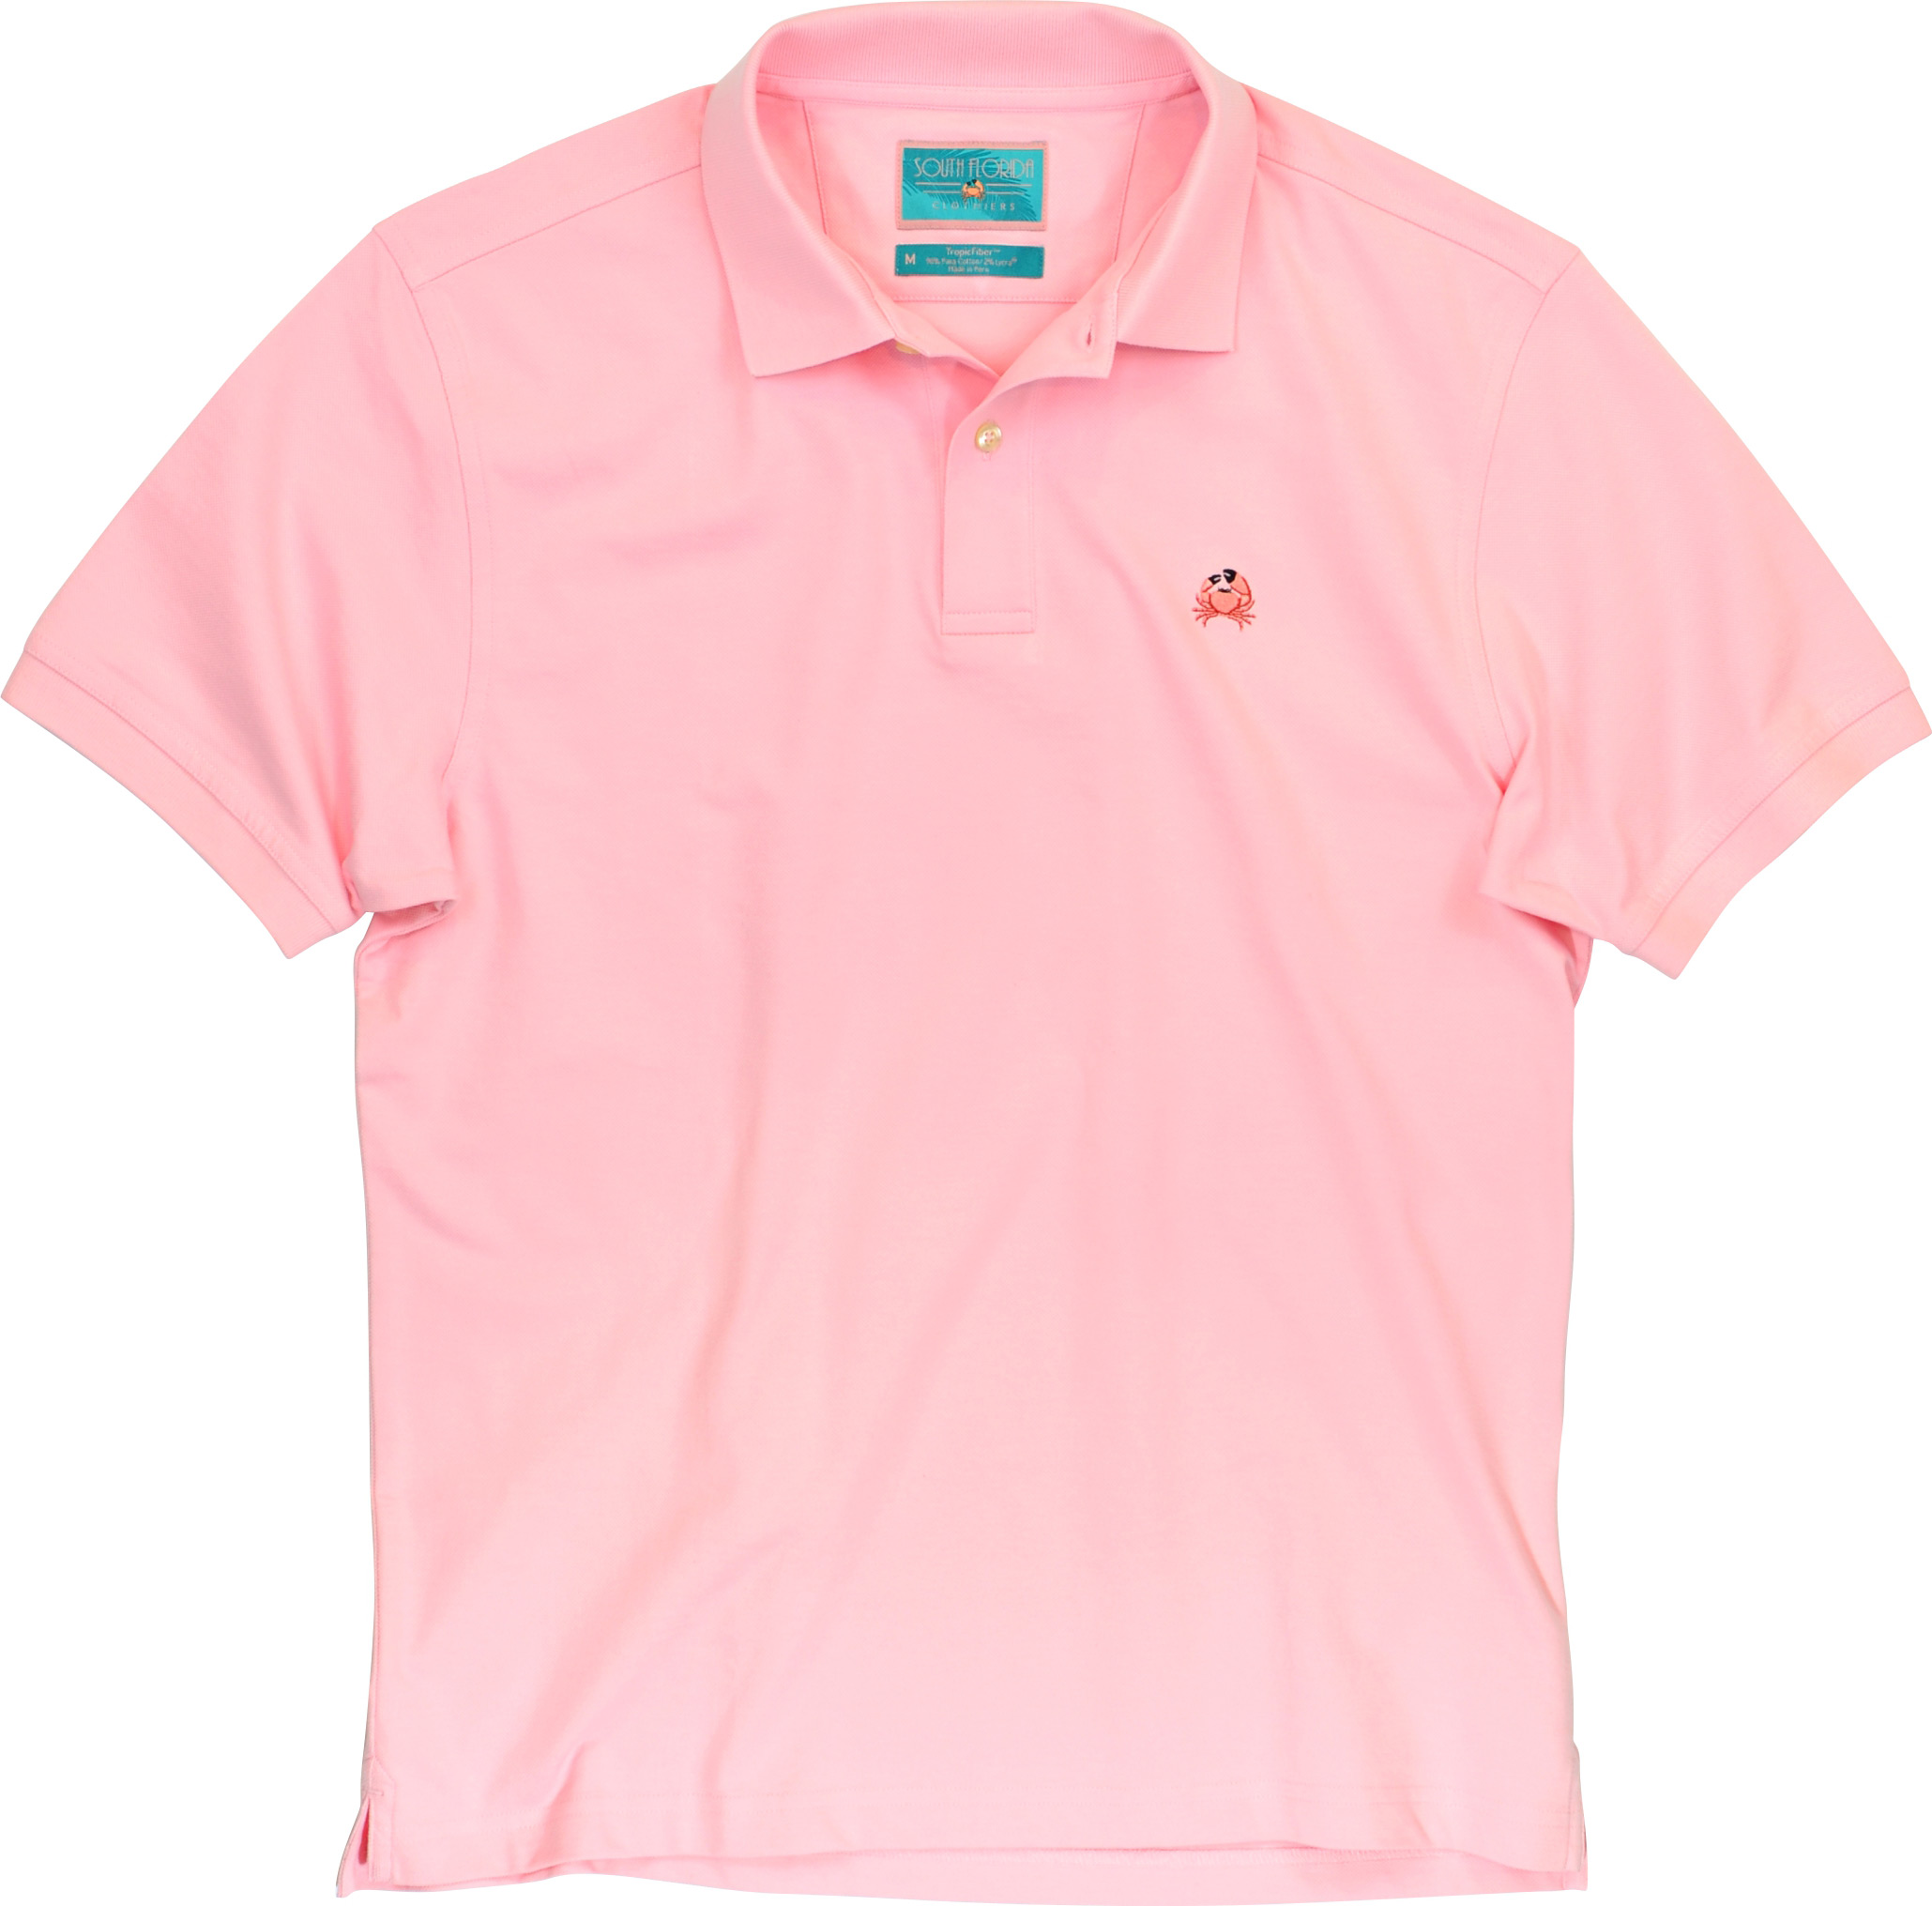 Tropicfiber Pique Polo Shirt South Florida Clothiers